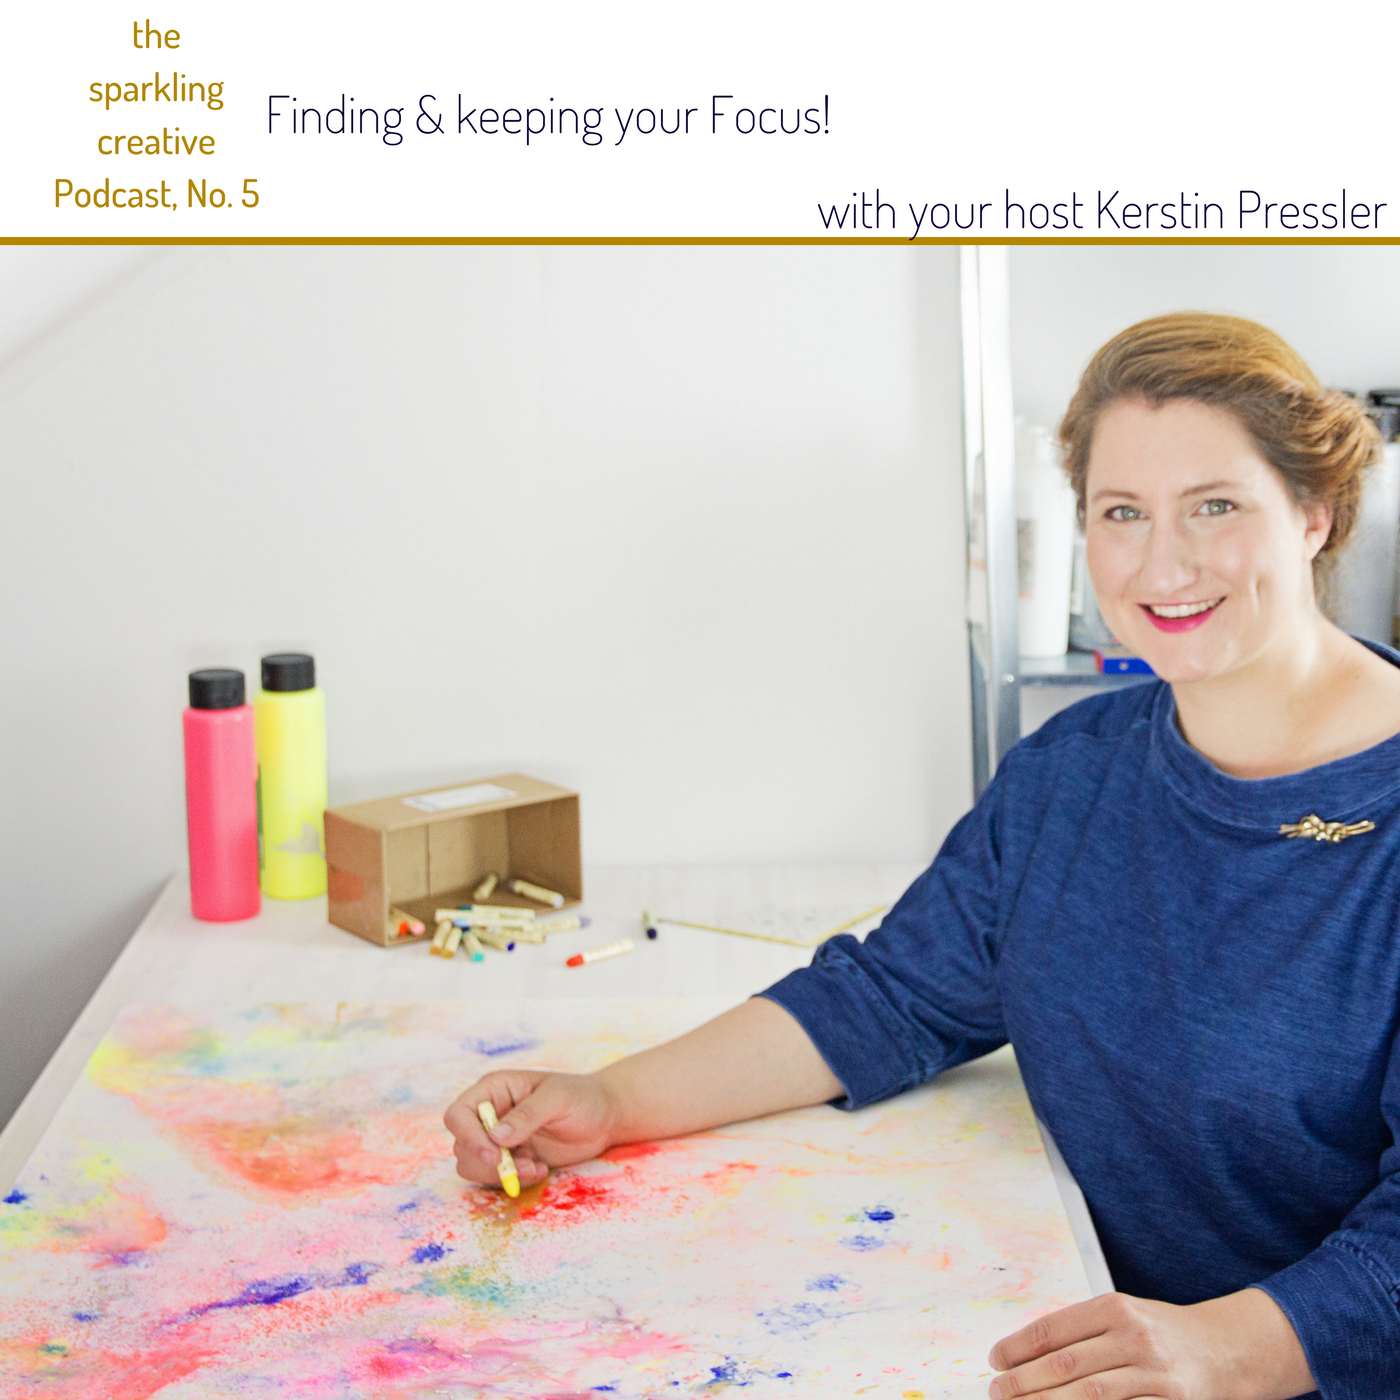 the sparkling creative Podcast Episode No. 5. Finding and keeping your focus.